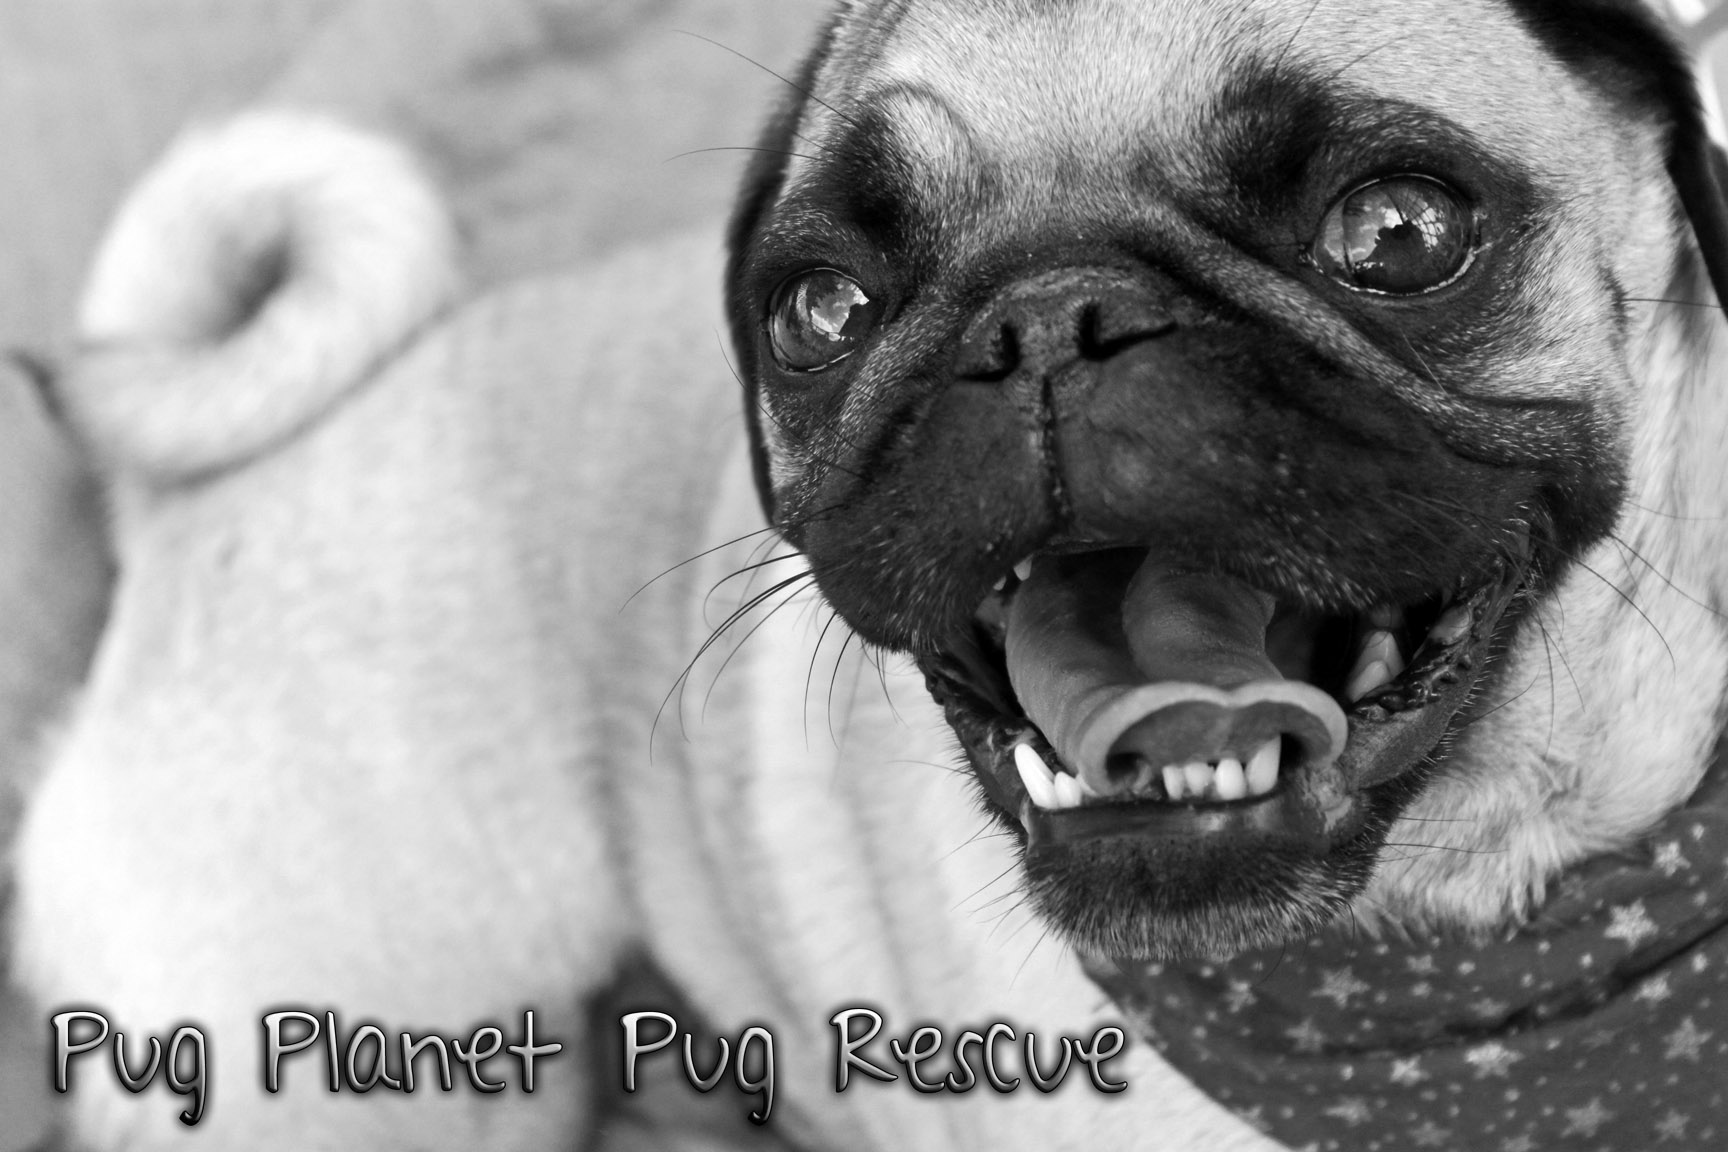 Pets For Adoption At Pug Planet Pug Rescue In Forked River Nj